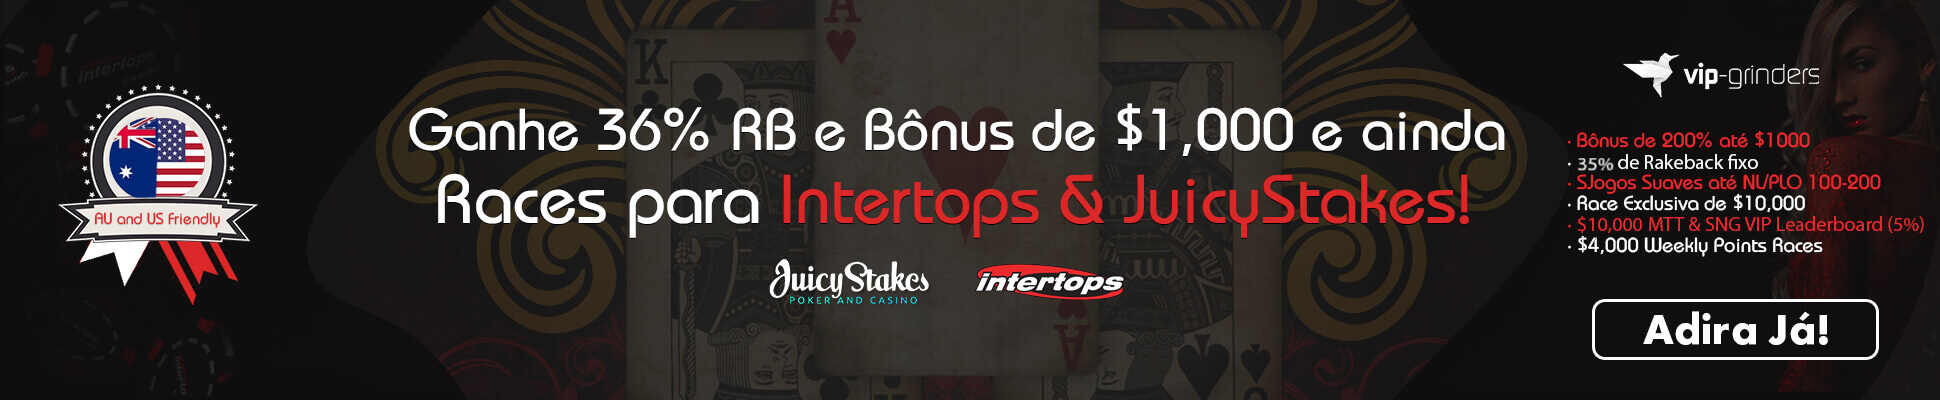 intertips-and-juicystakes-slider-new-br-january-1